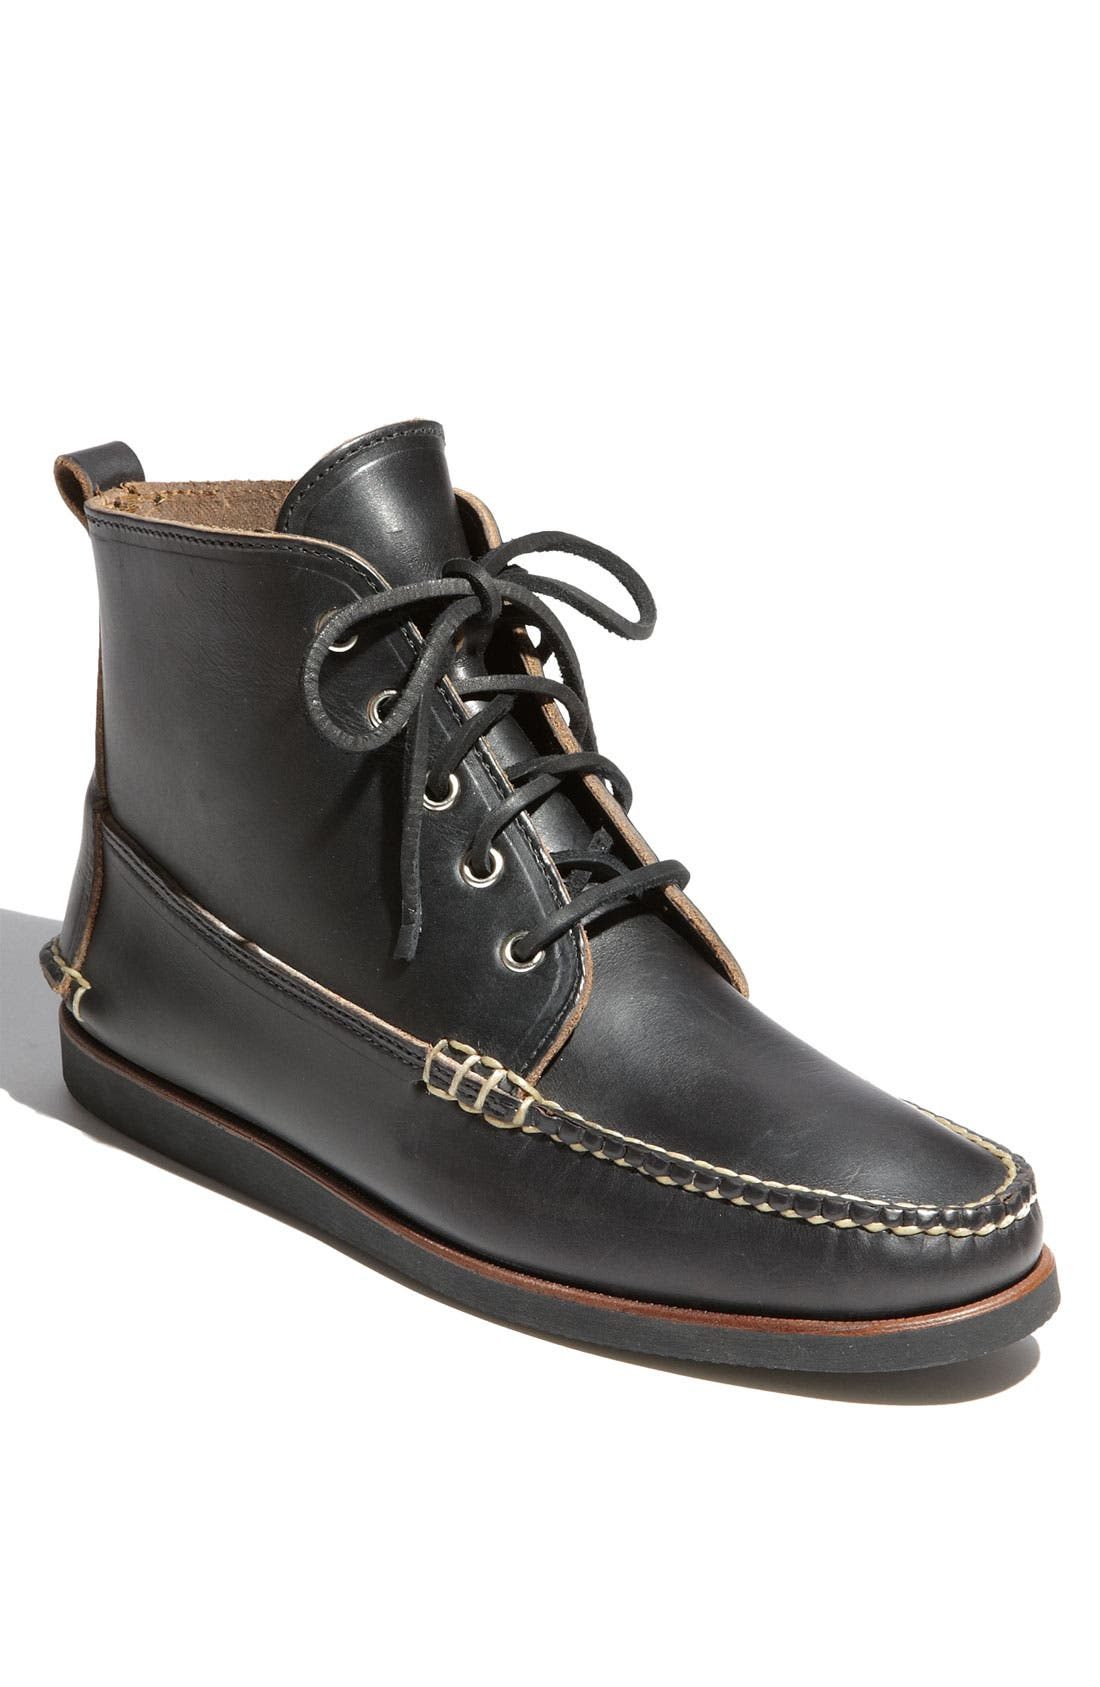 Alternate Image 1 Selected - Eastland Made in Maine 'Seneca USA' Boot